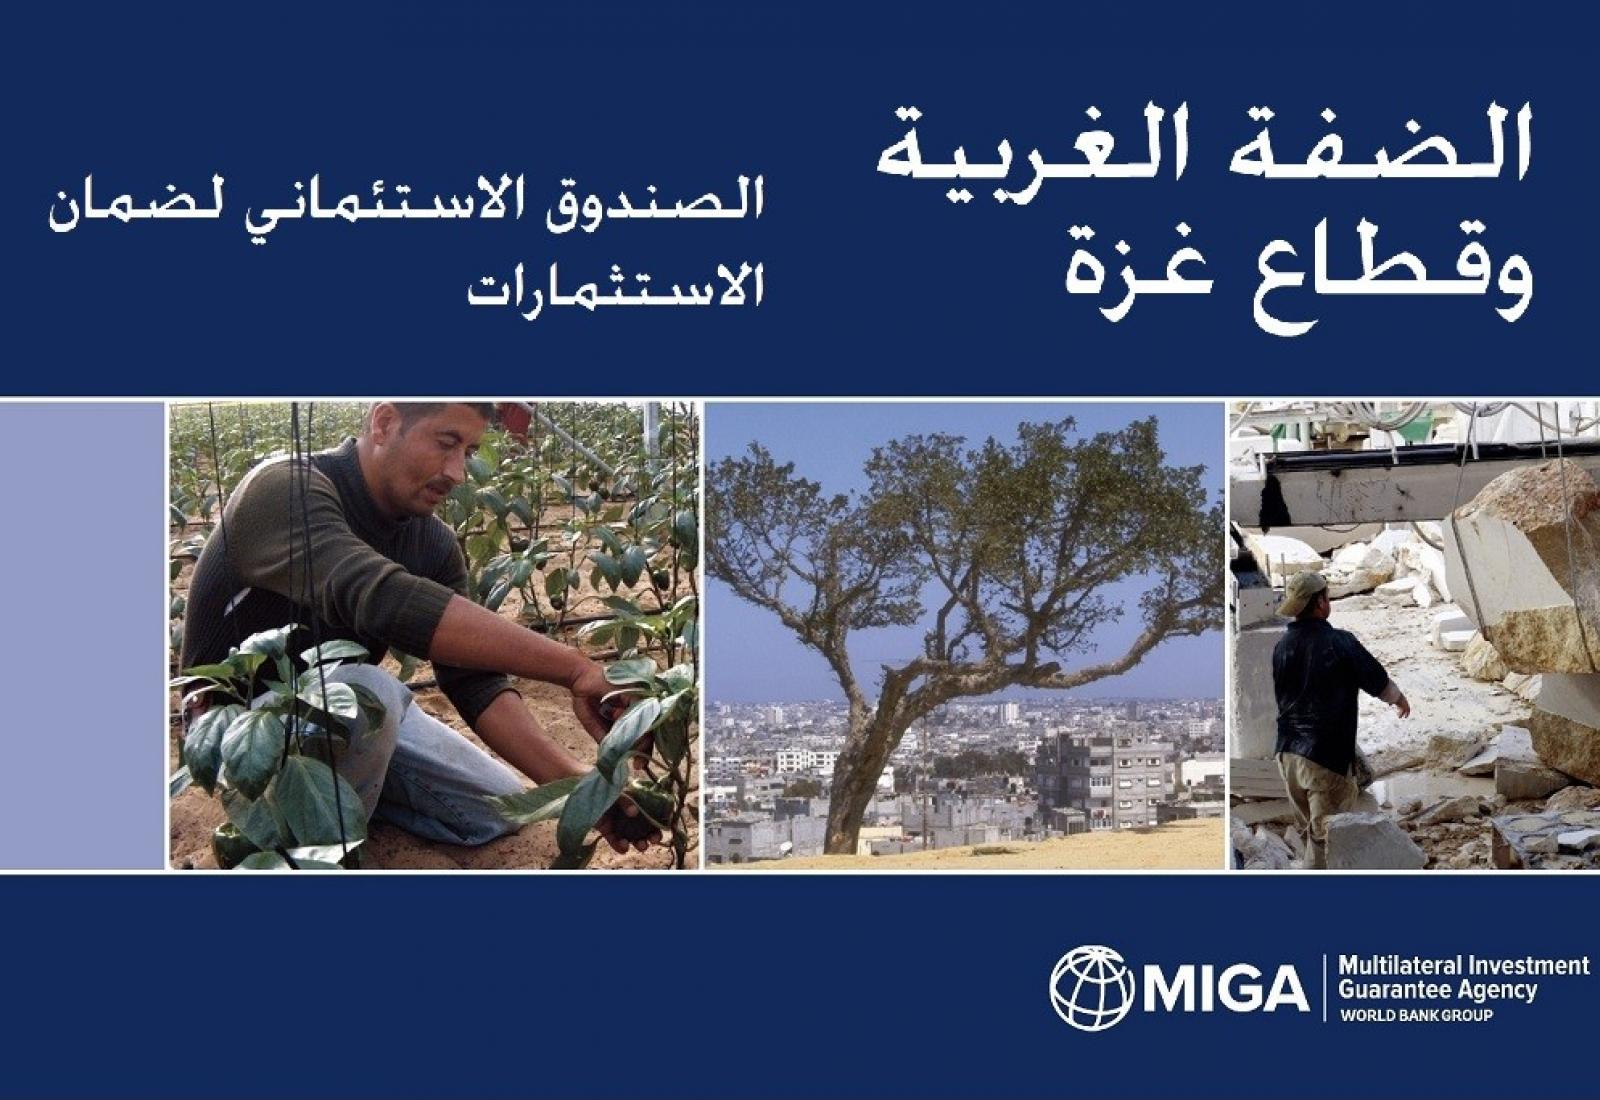 MIGA West Bank and Gaza Trust Fund Teaser - AR